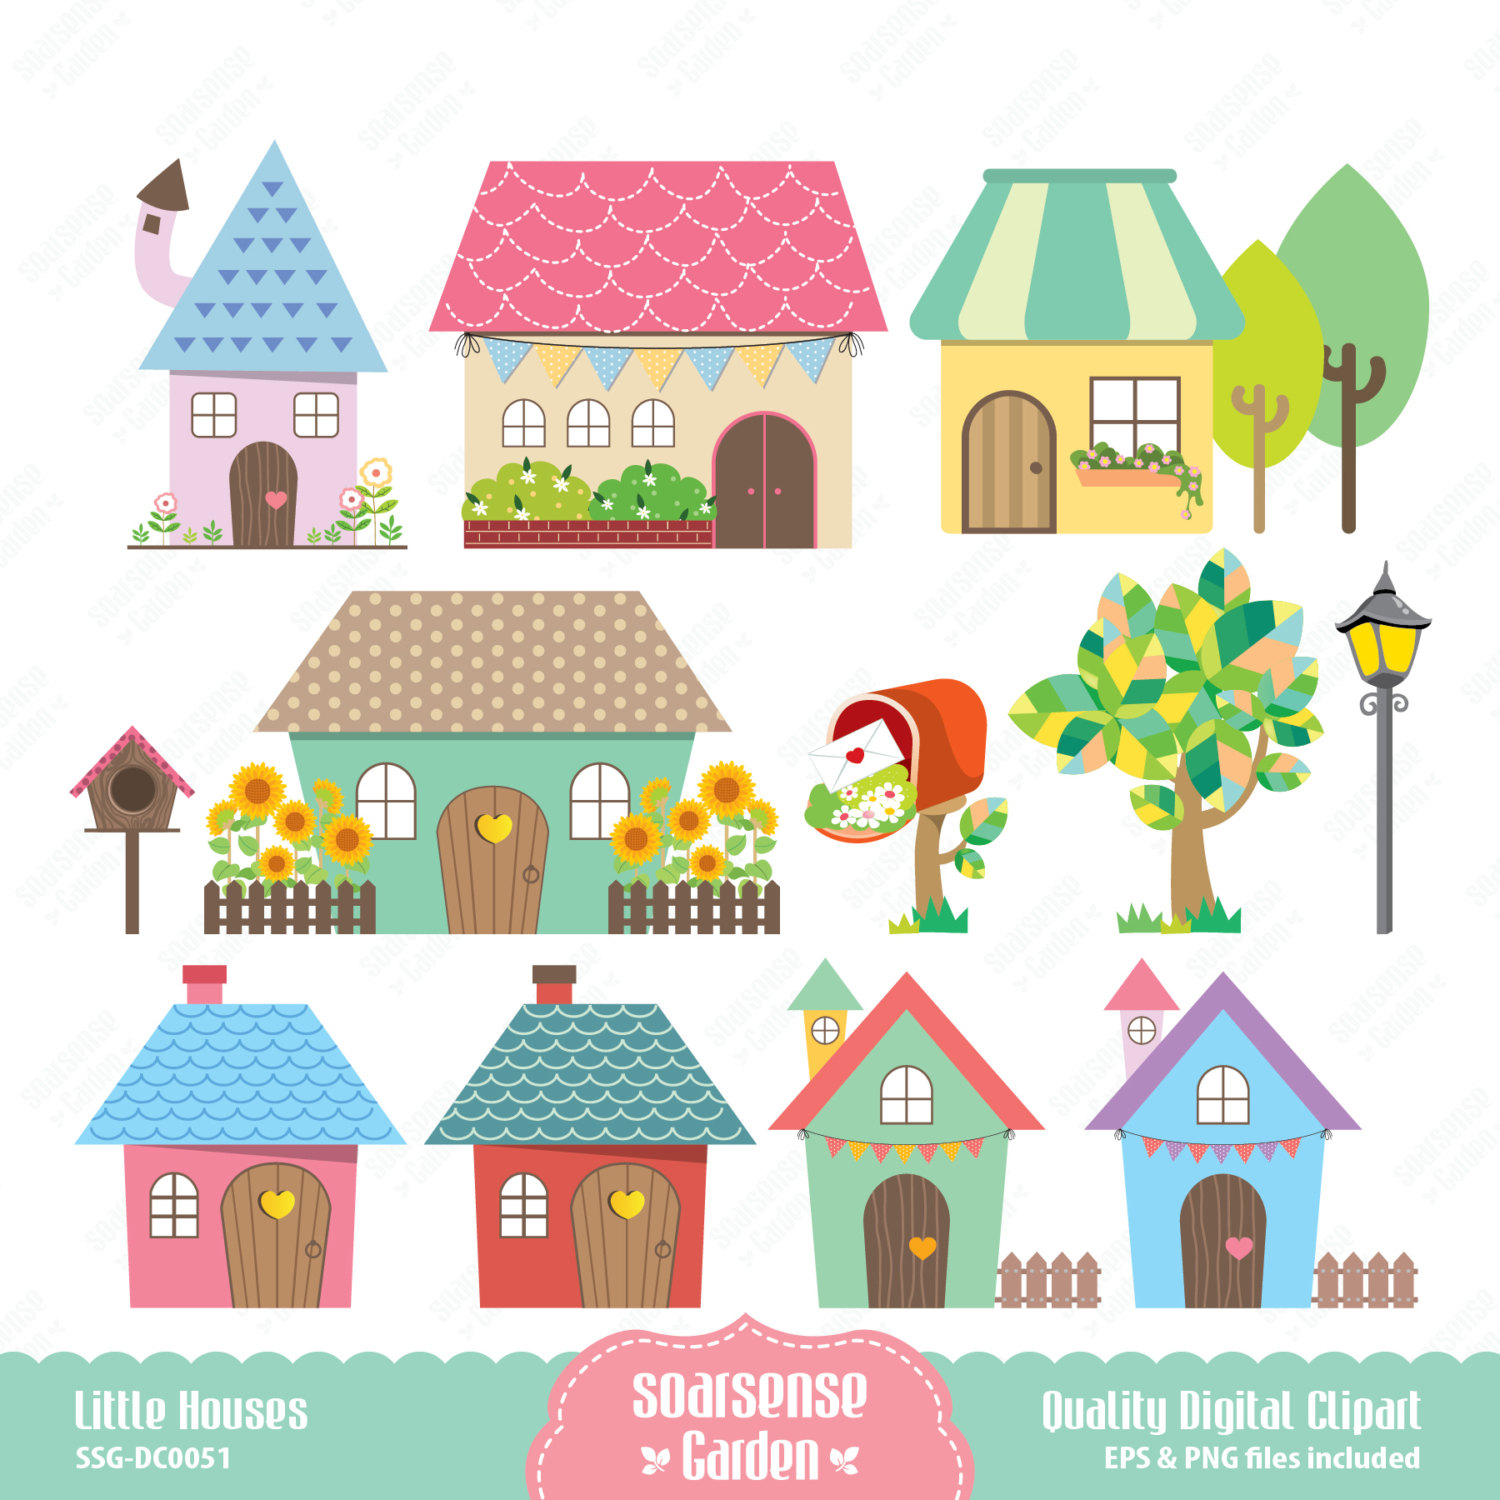 Clip Art Clipart Home clip art of home items clipart kid little houses digital february 08 2014 at 12